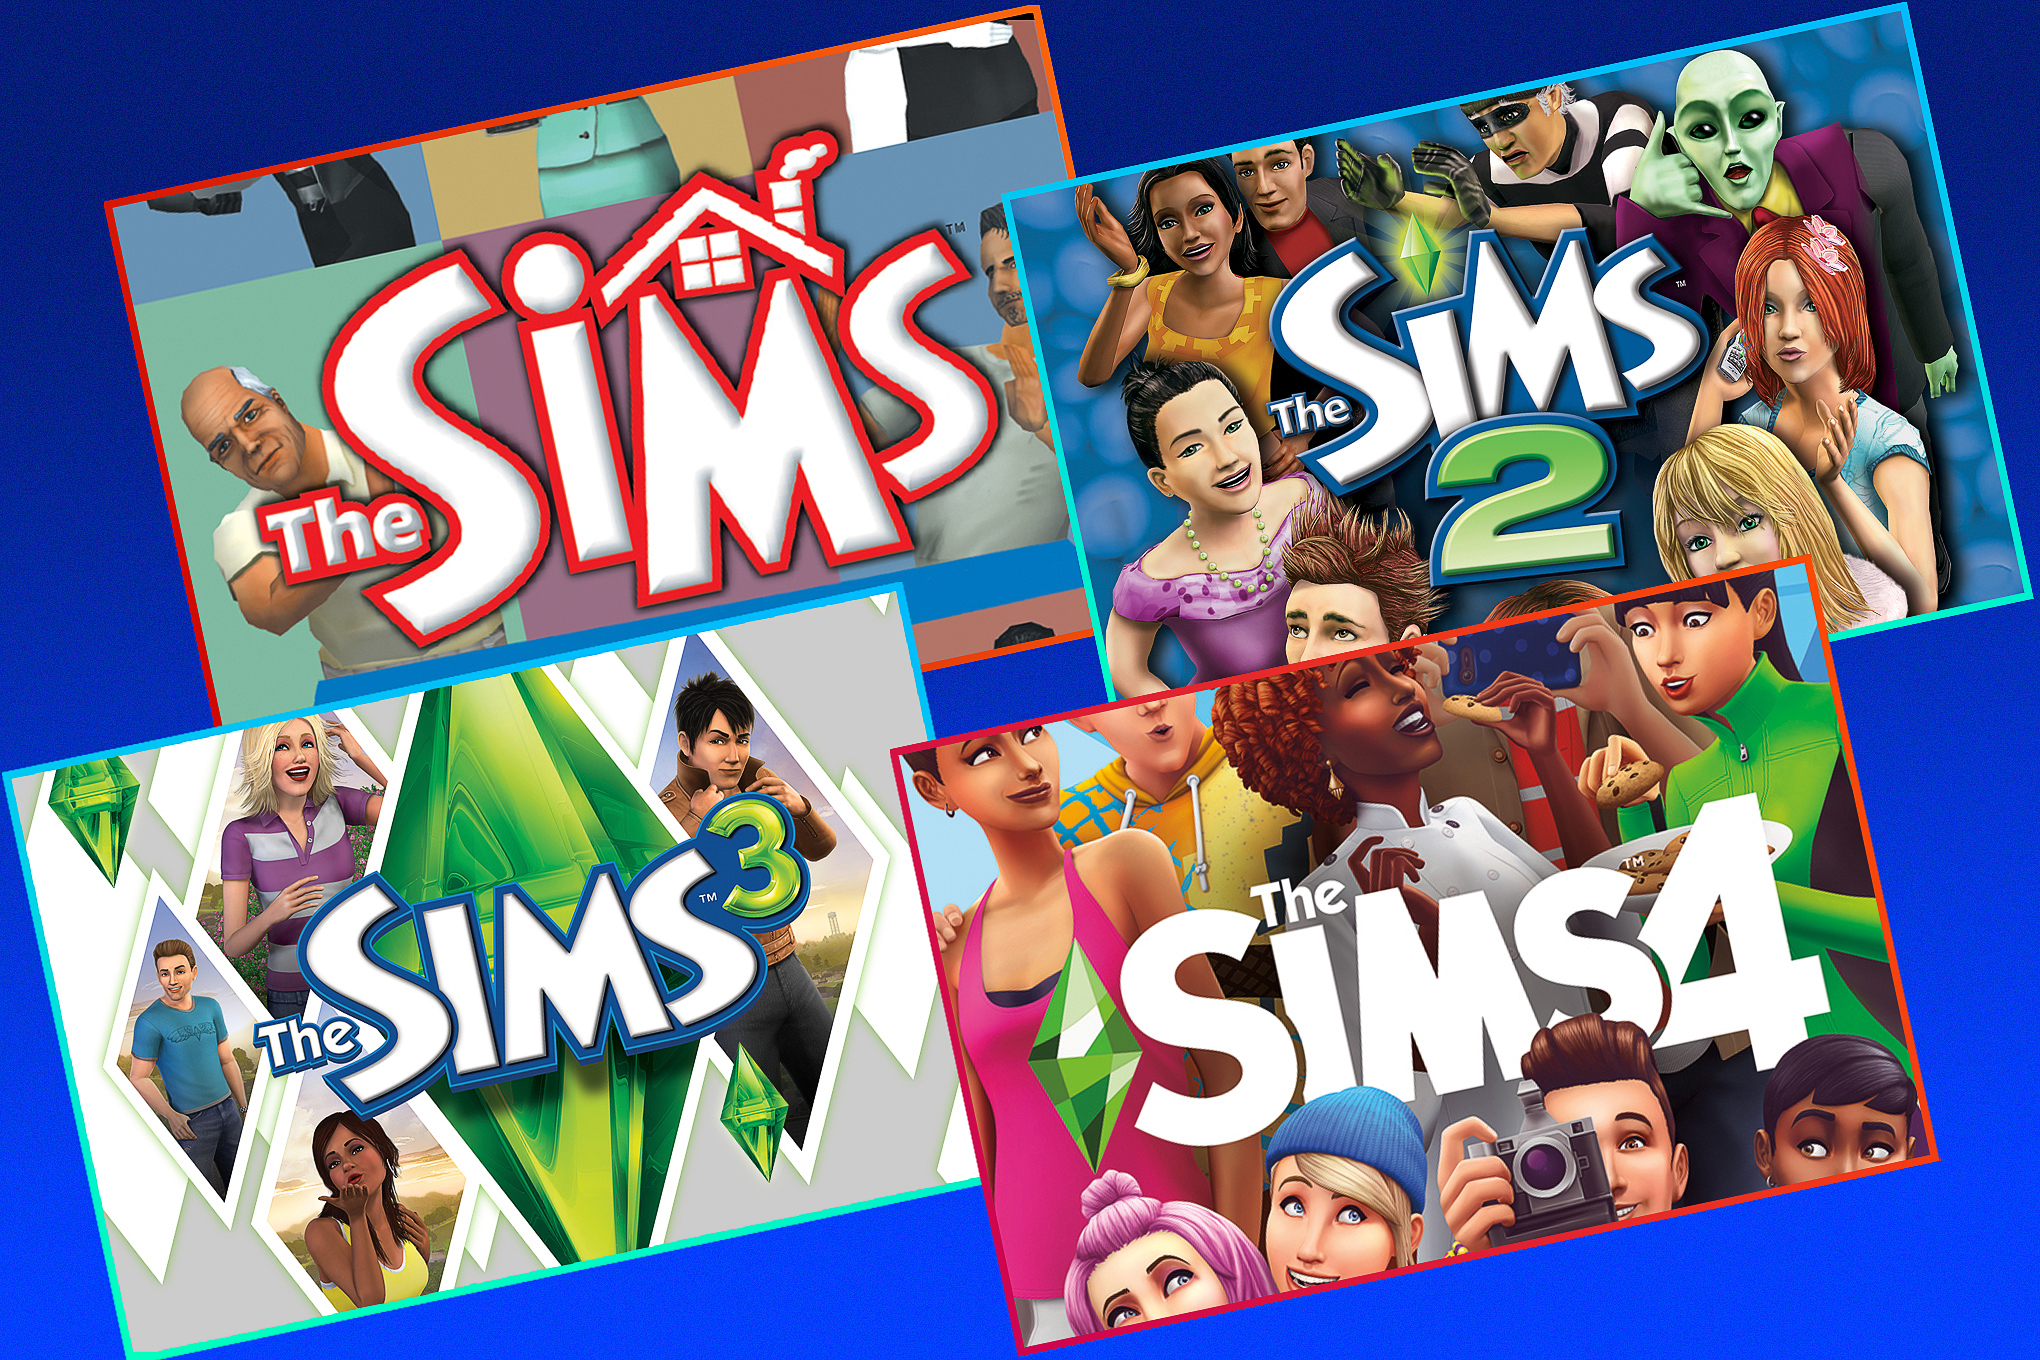 graphic illustration featuring covers from The Sims, The Sims 2, The Sims 3, and The Sims 4 in four rectangles rotated to the left